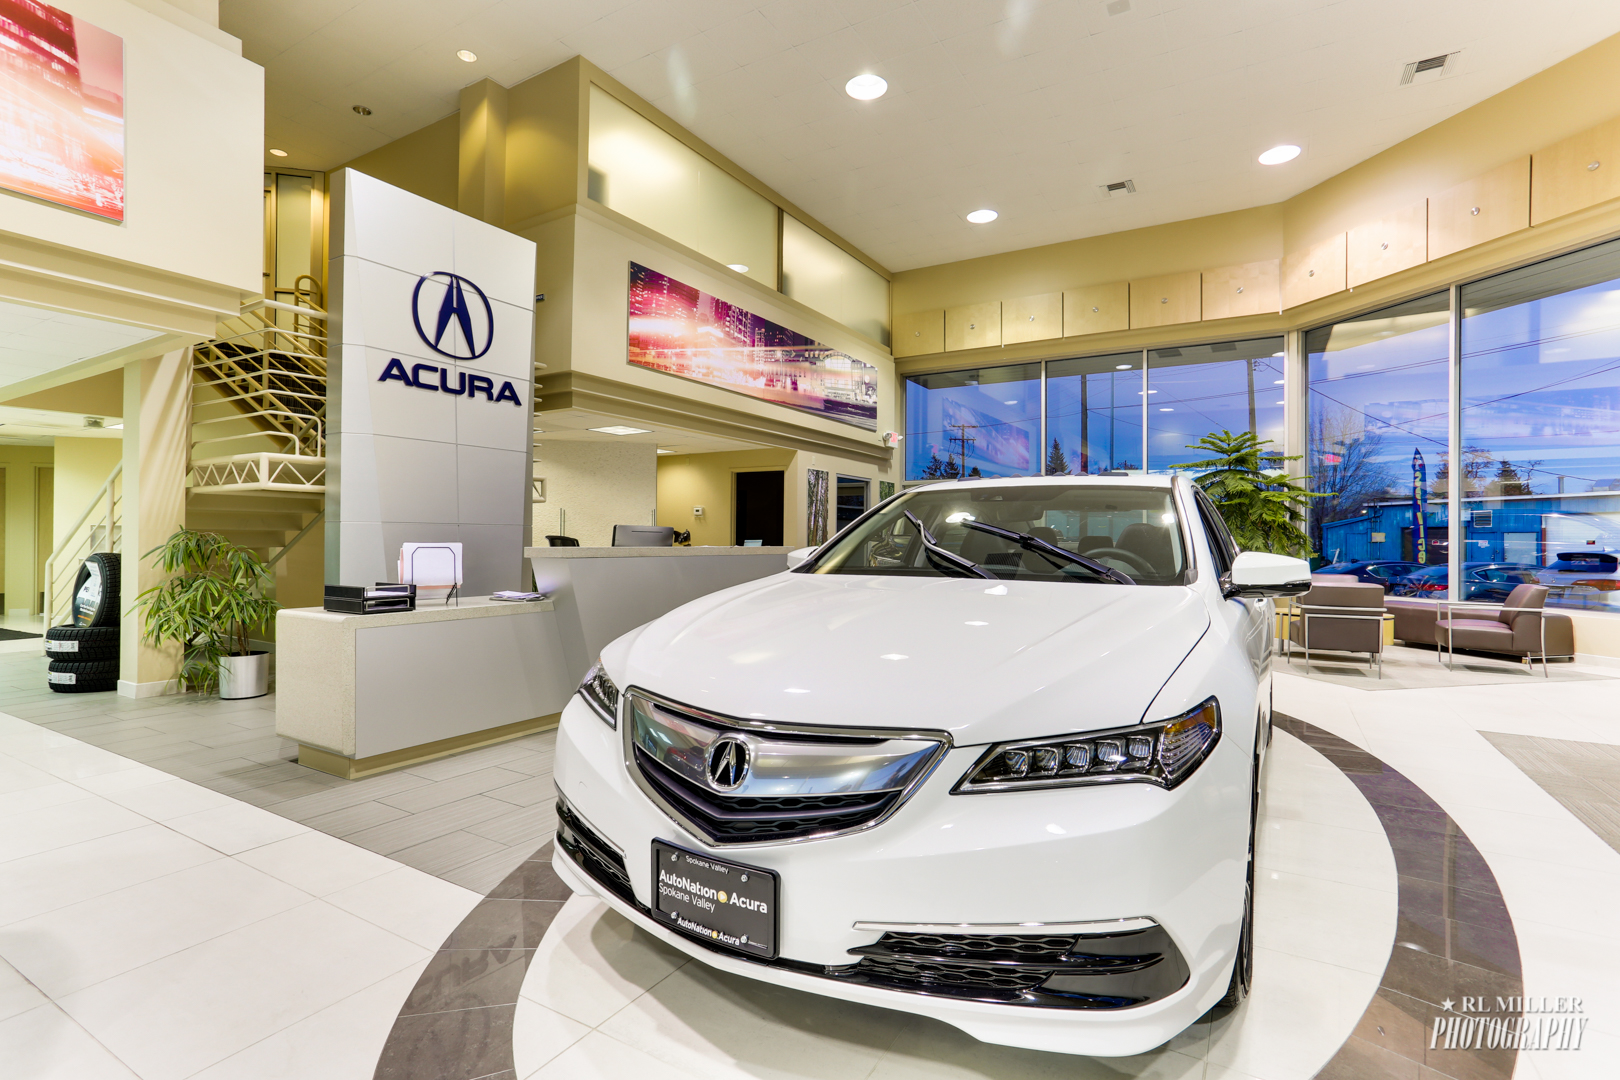 Autonation Acura Spokane Valley